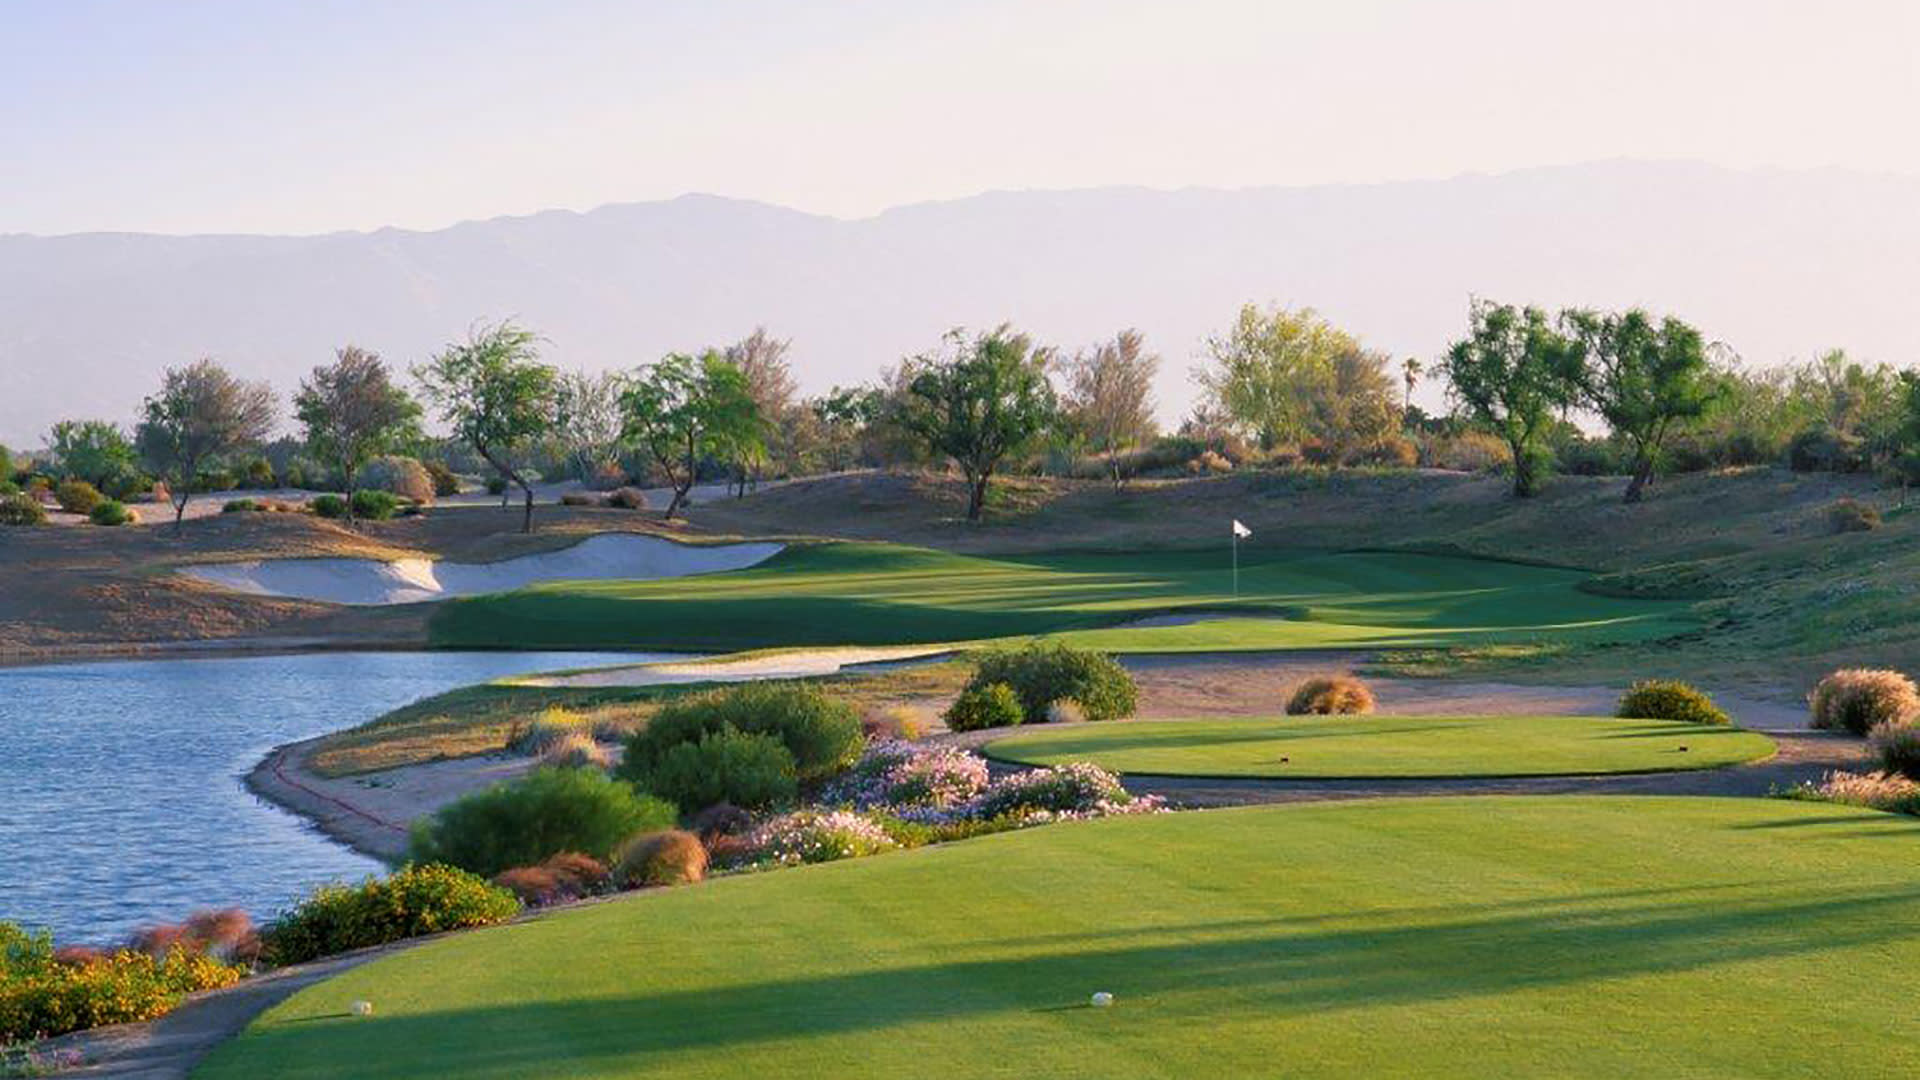 norman resort course at pga west